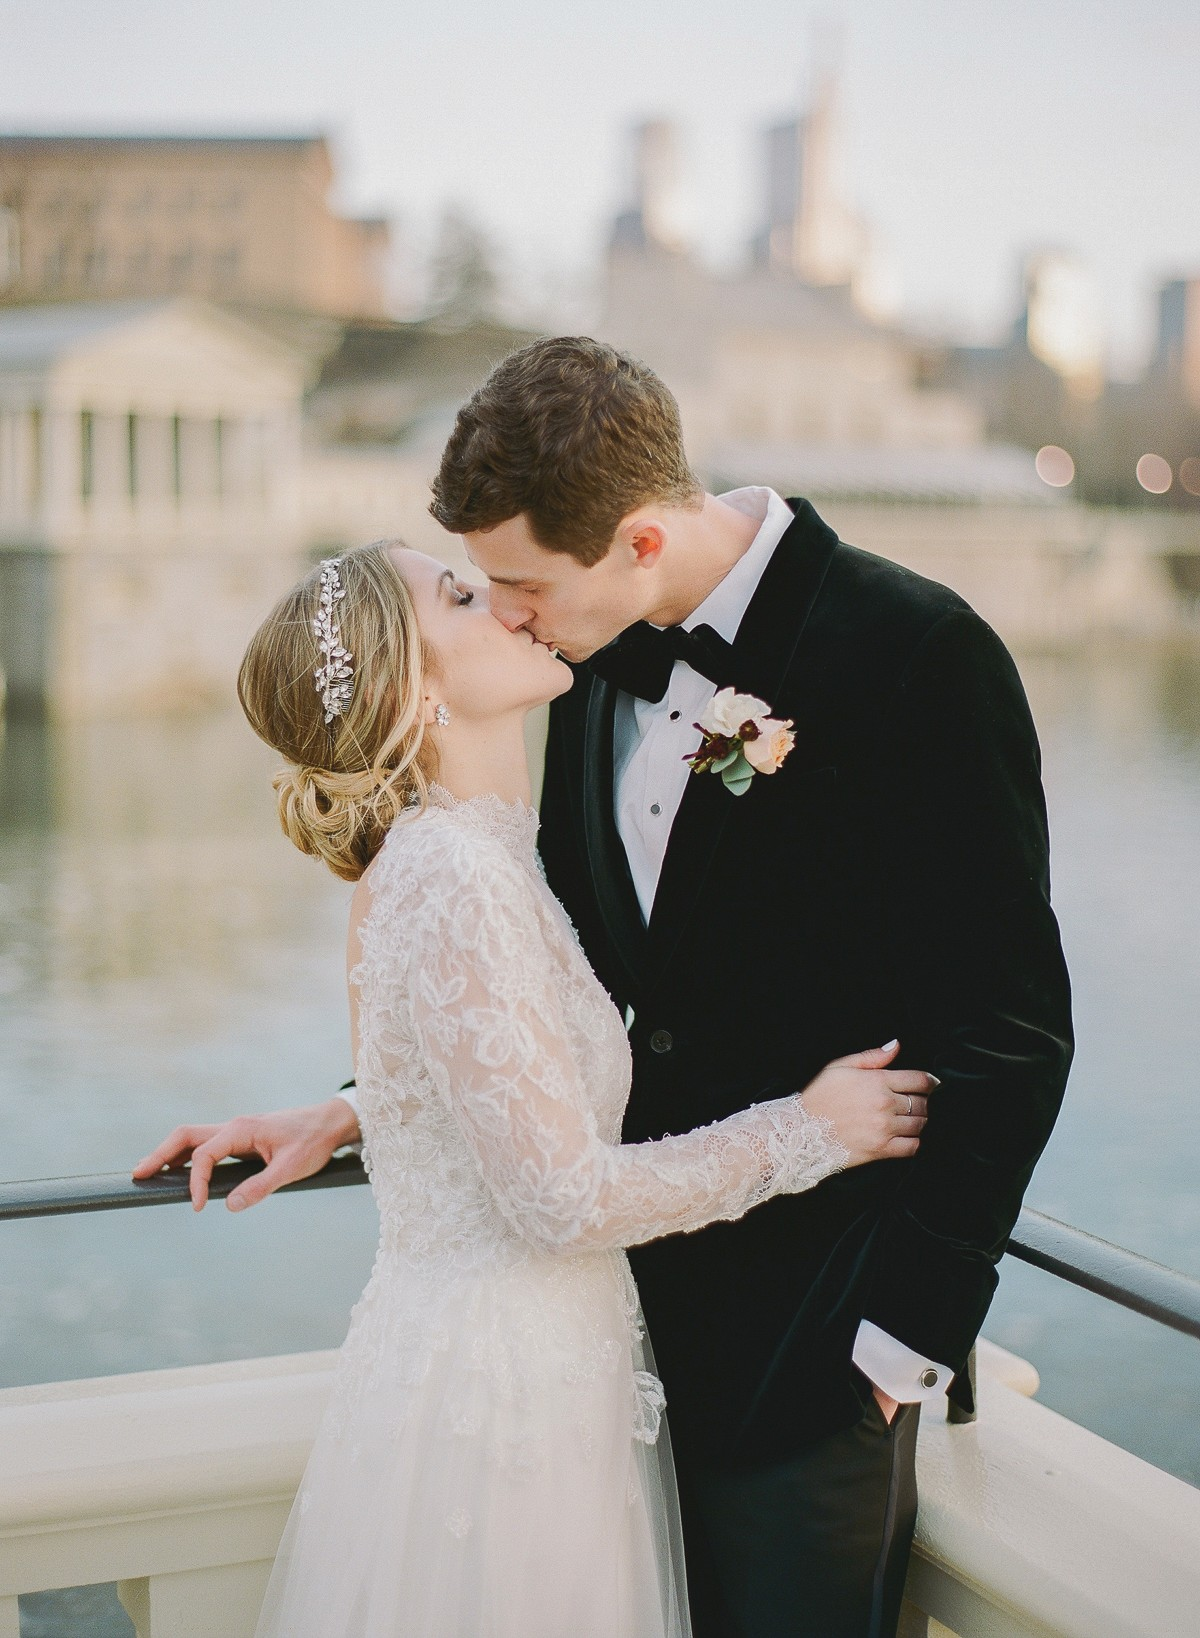 Bride Designs Her Own Dress for New Years Eve Wedding!